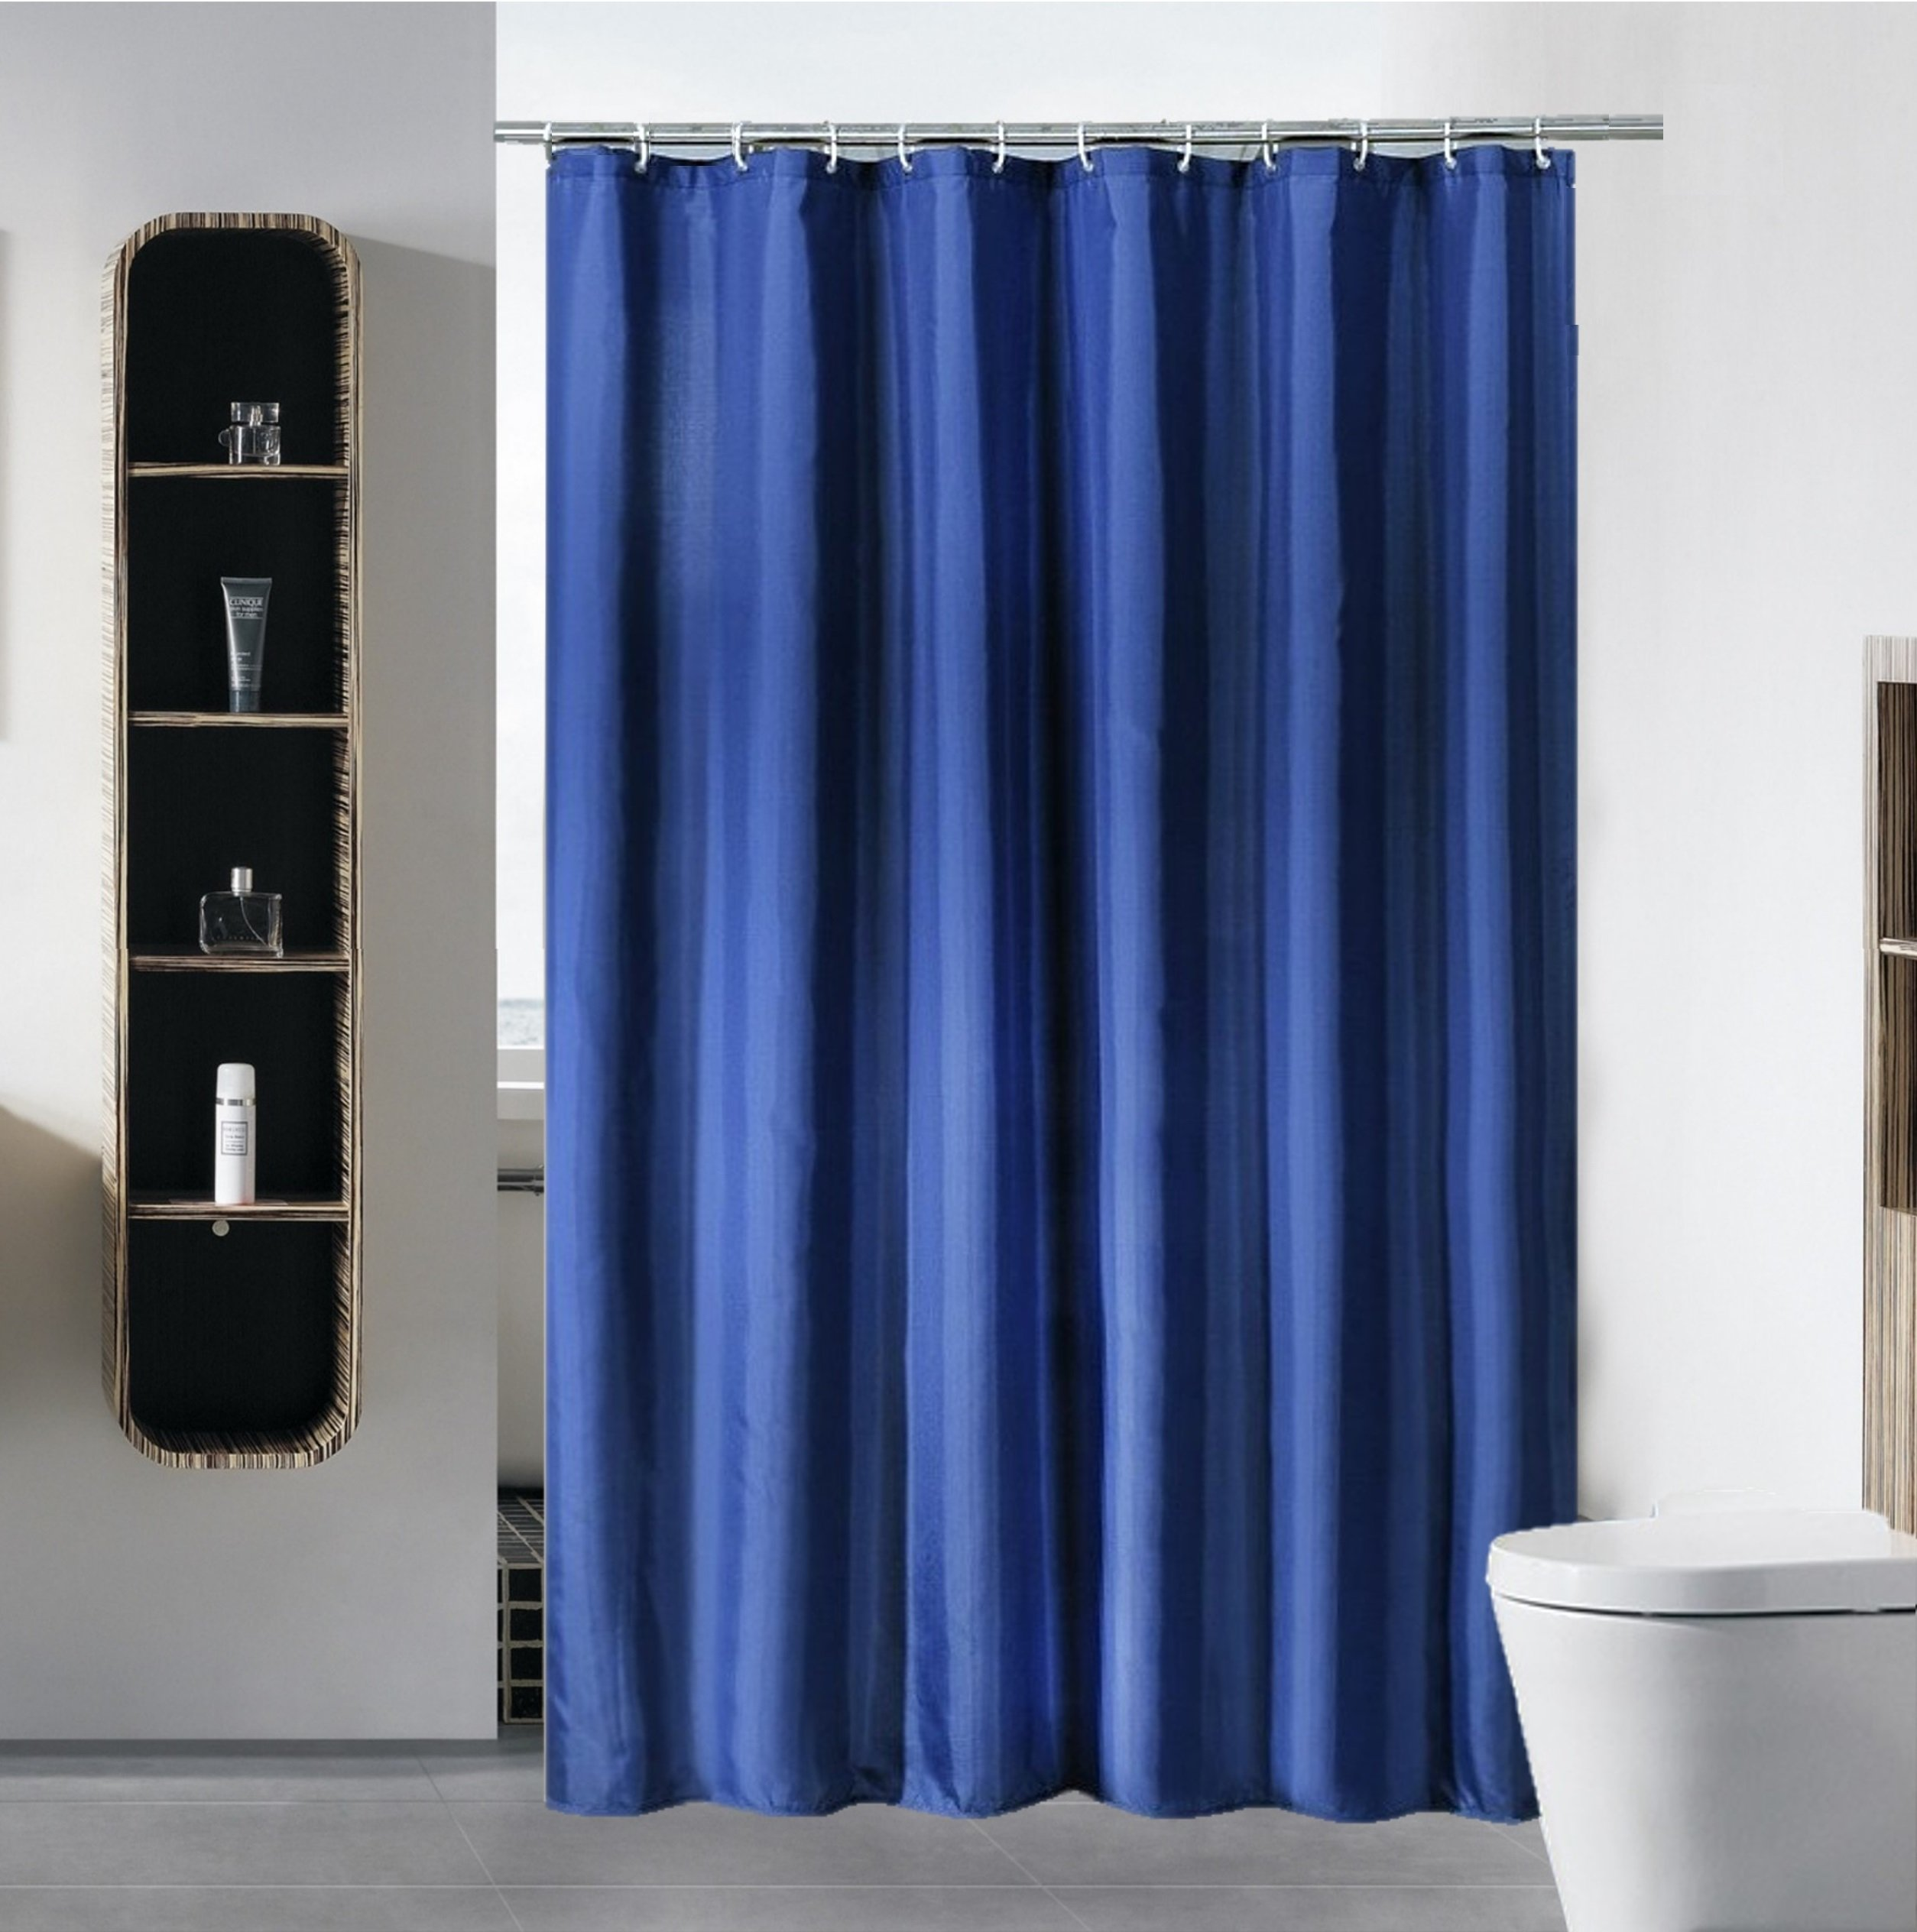 S·Lattye Shower Curtain Liner Water Repellent Fabric Mildew Resistant Washable Cloth (Hotel Quality, Eco Friendly, Heavy Weight Hem) - 72'' x 72'', Standard, Navy Blue